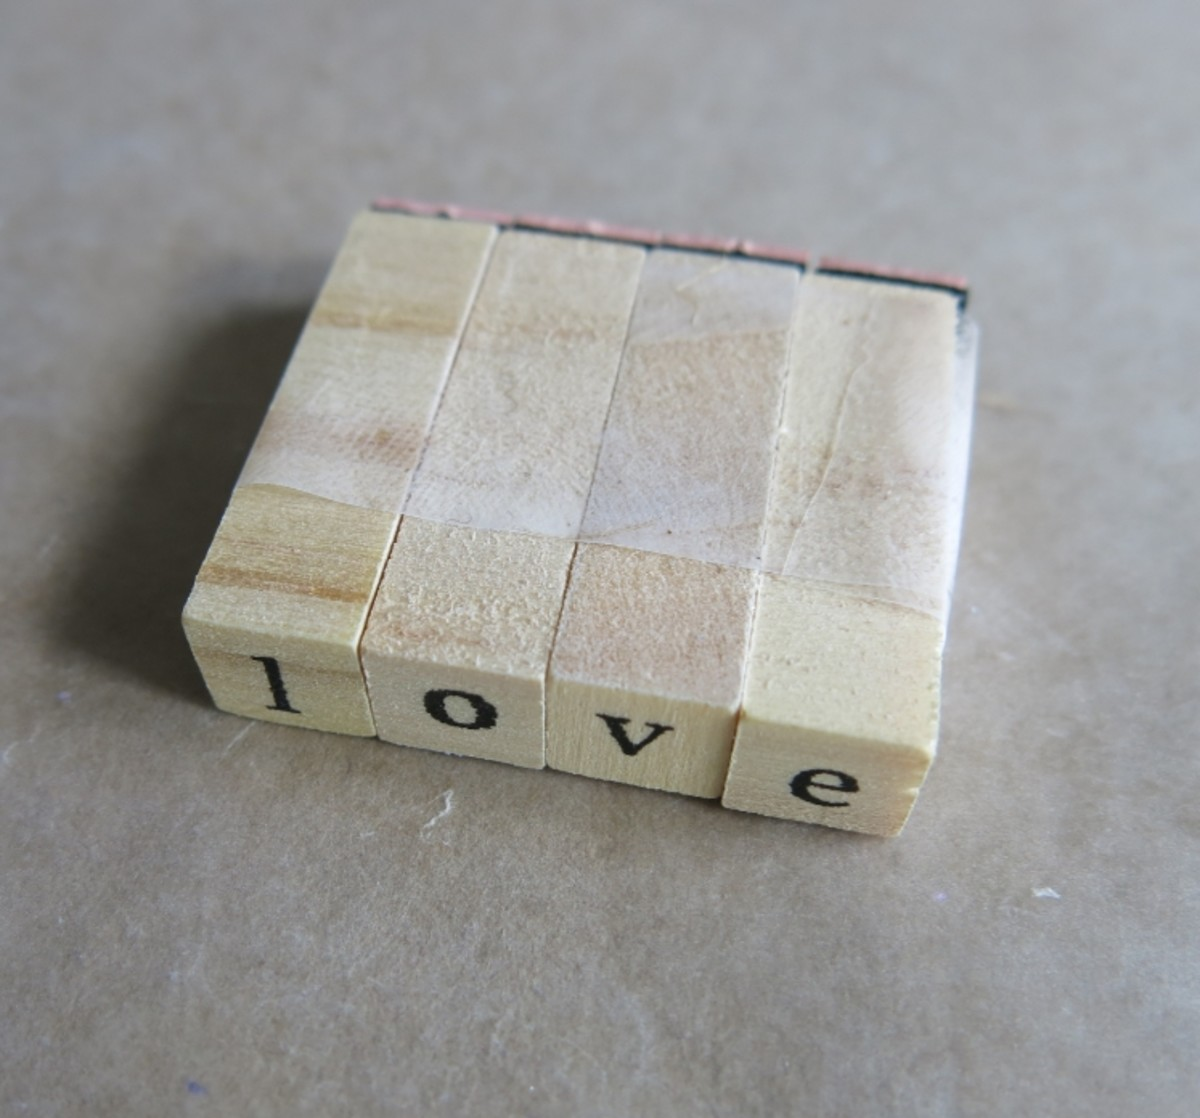 Tape alphabet stamps together to form a word before using